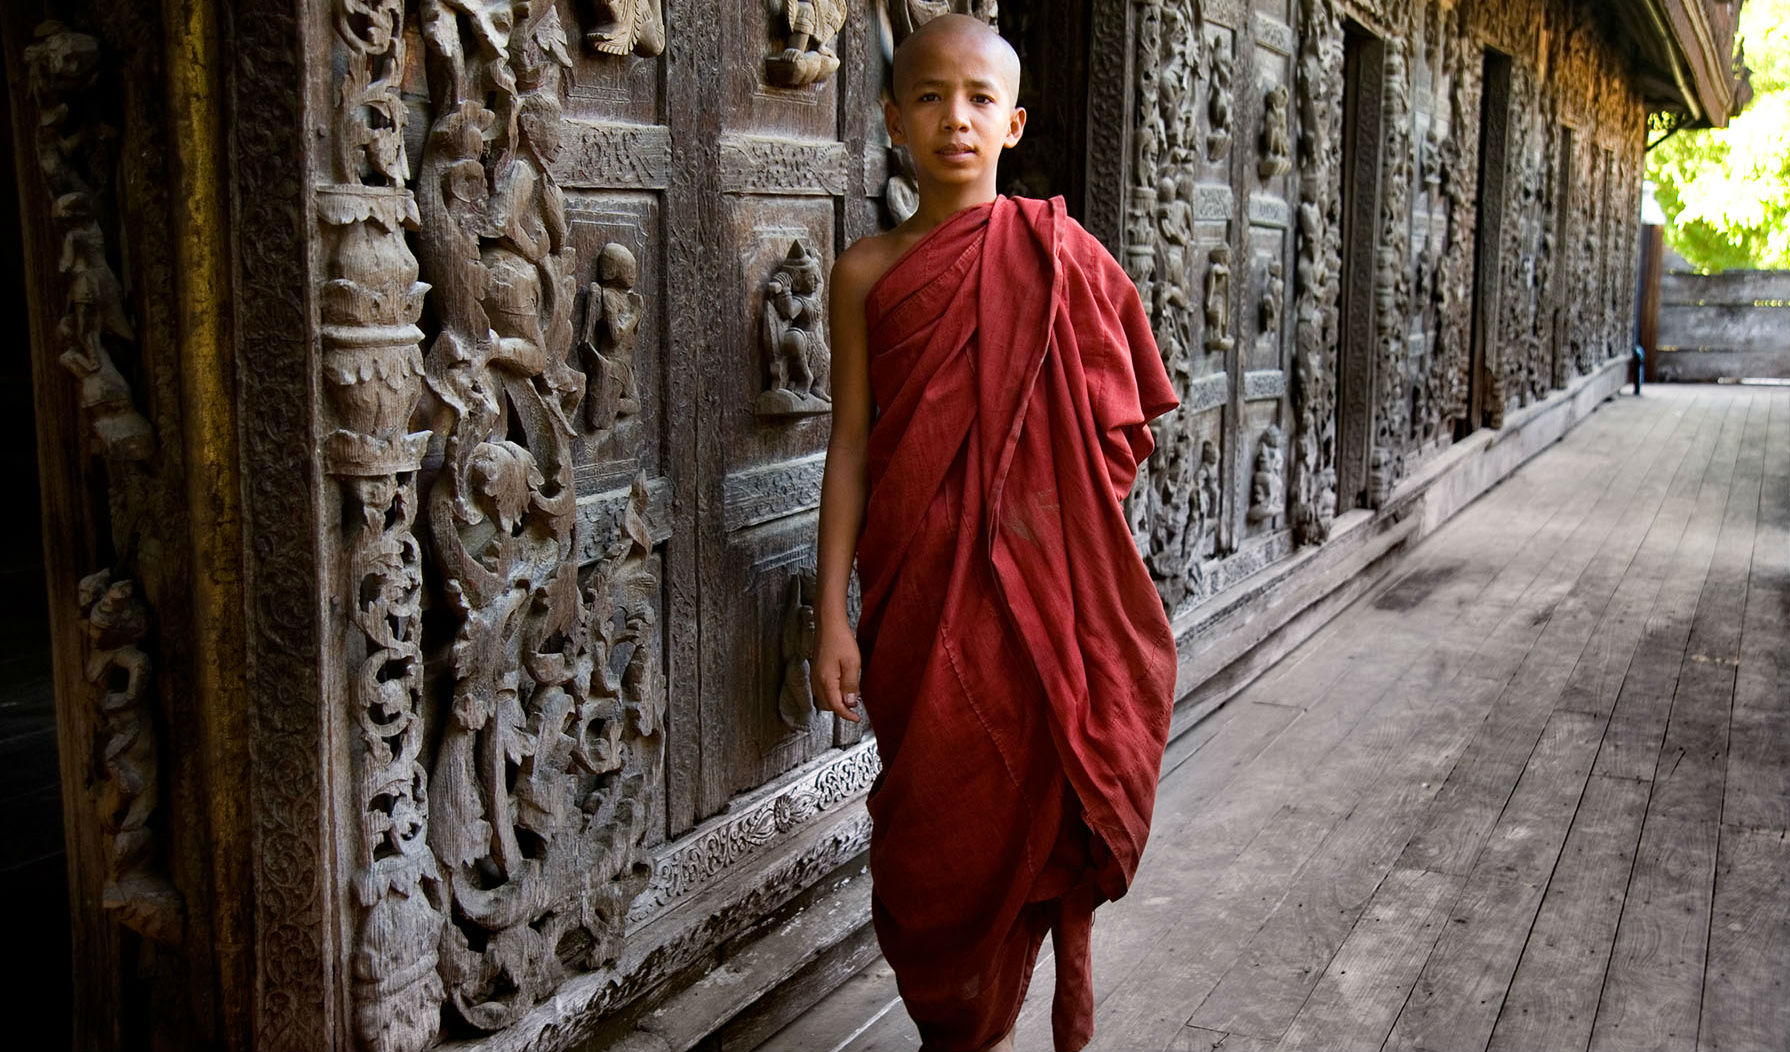 Meet monks at the monastery in Mandalay